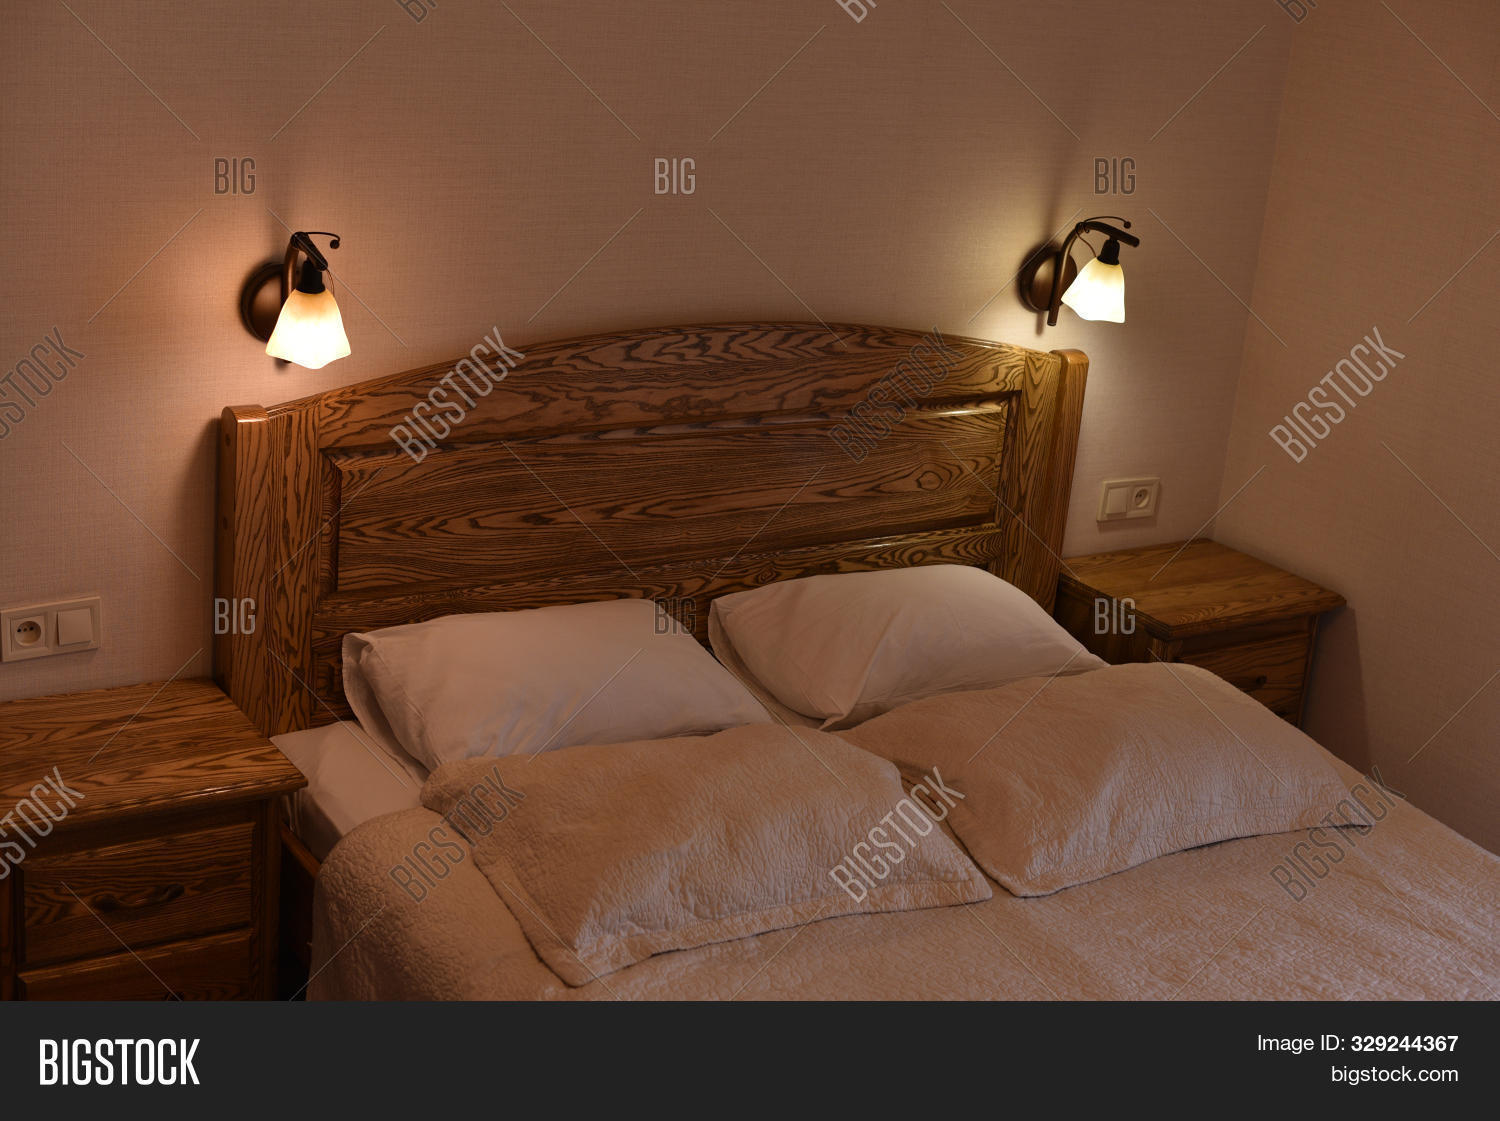 Bed Hotel Room Bed Image Photo Free Trial Bigstock